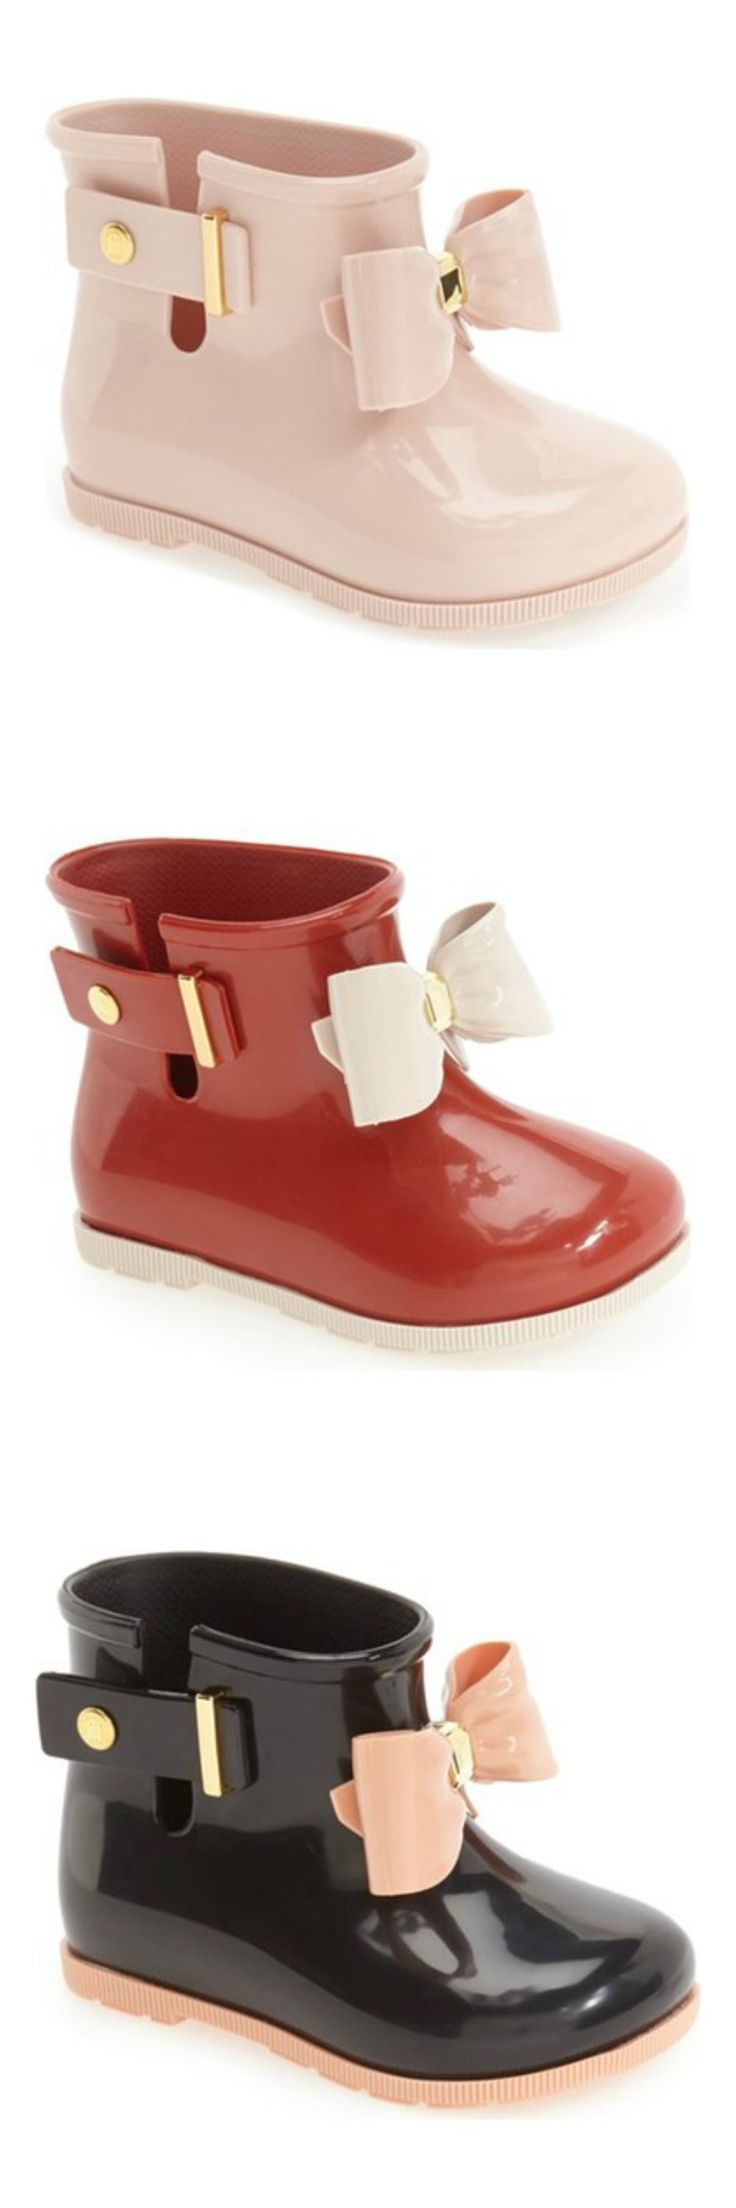 Absolutely adoring this Mini Melissa rain boots! An over-sized bow lends a playful touch to these puddle-ready boots in pink, red and black.